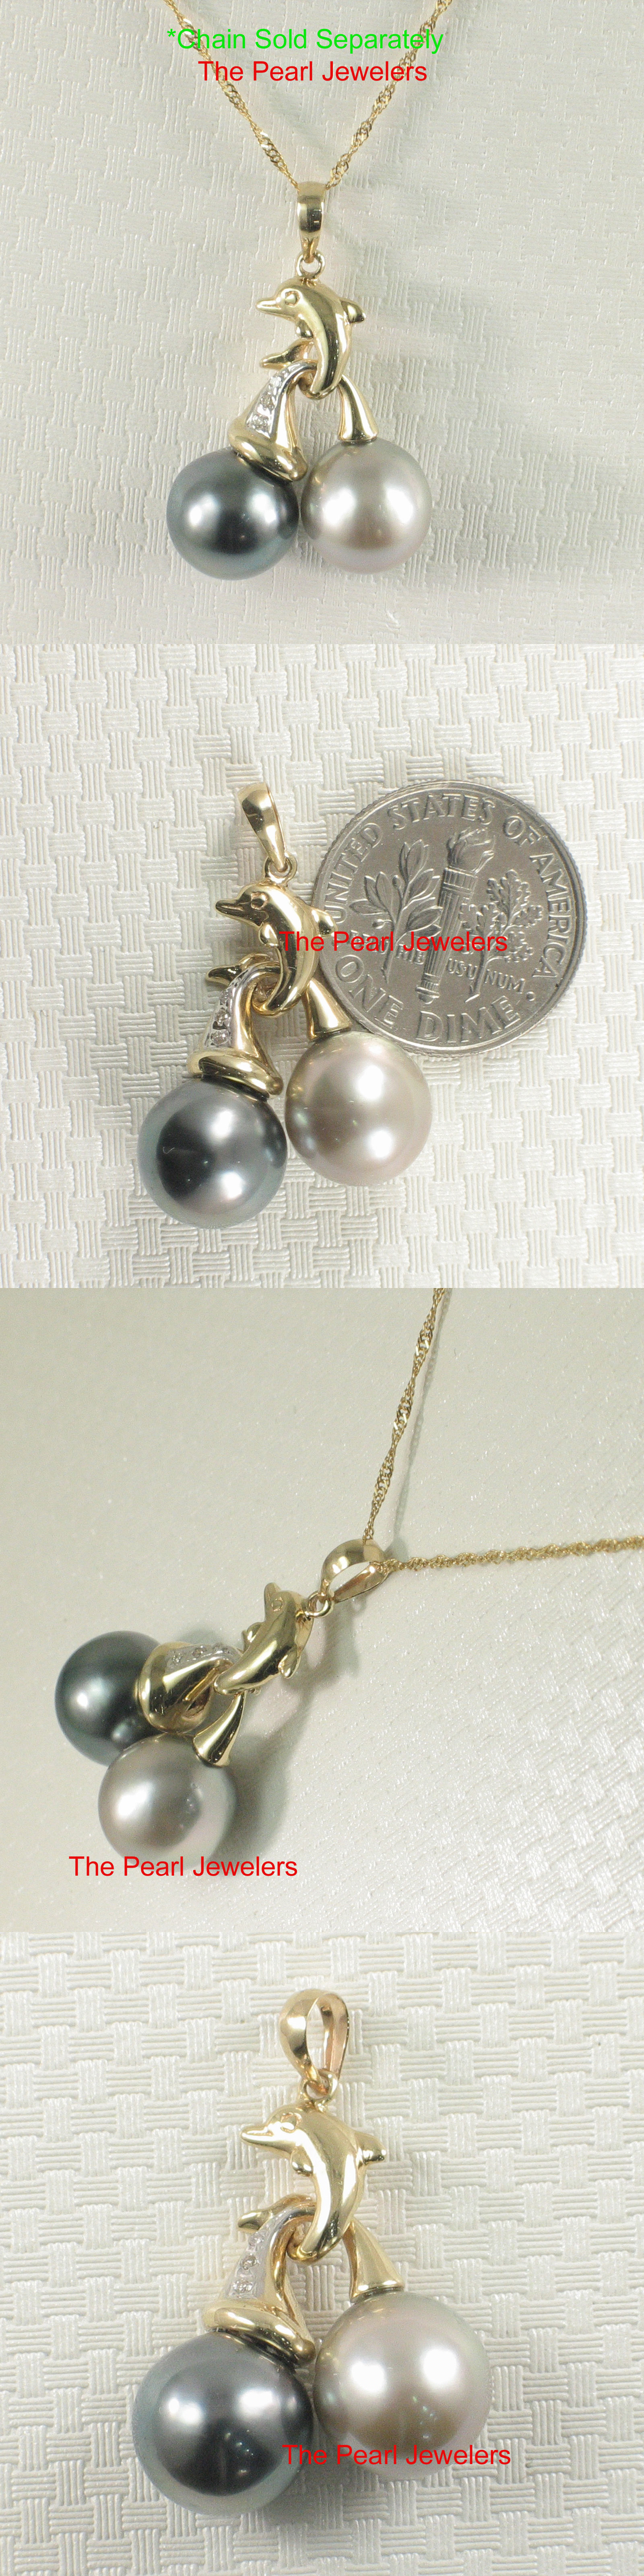 Pearl 164333: Twin Silver And Black Tahitian Pearl: Diamond Pendant 14K Solid Yellow Gold – Tpj -> BUY IT NOW ONLY: $338.85 on eBay!